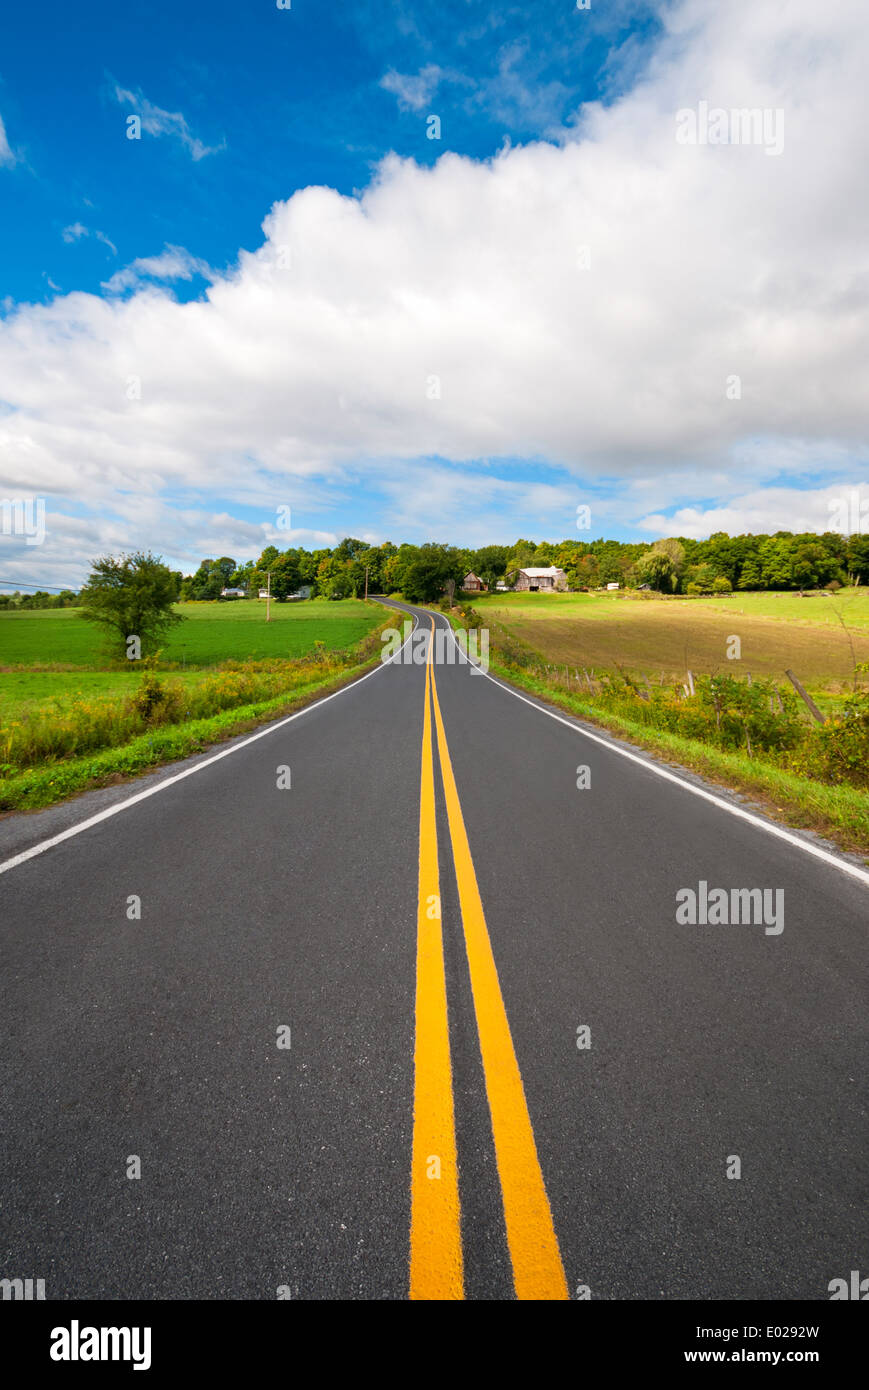 A country road leading off into the distance. - Stock Image